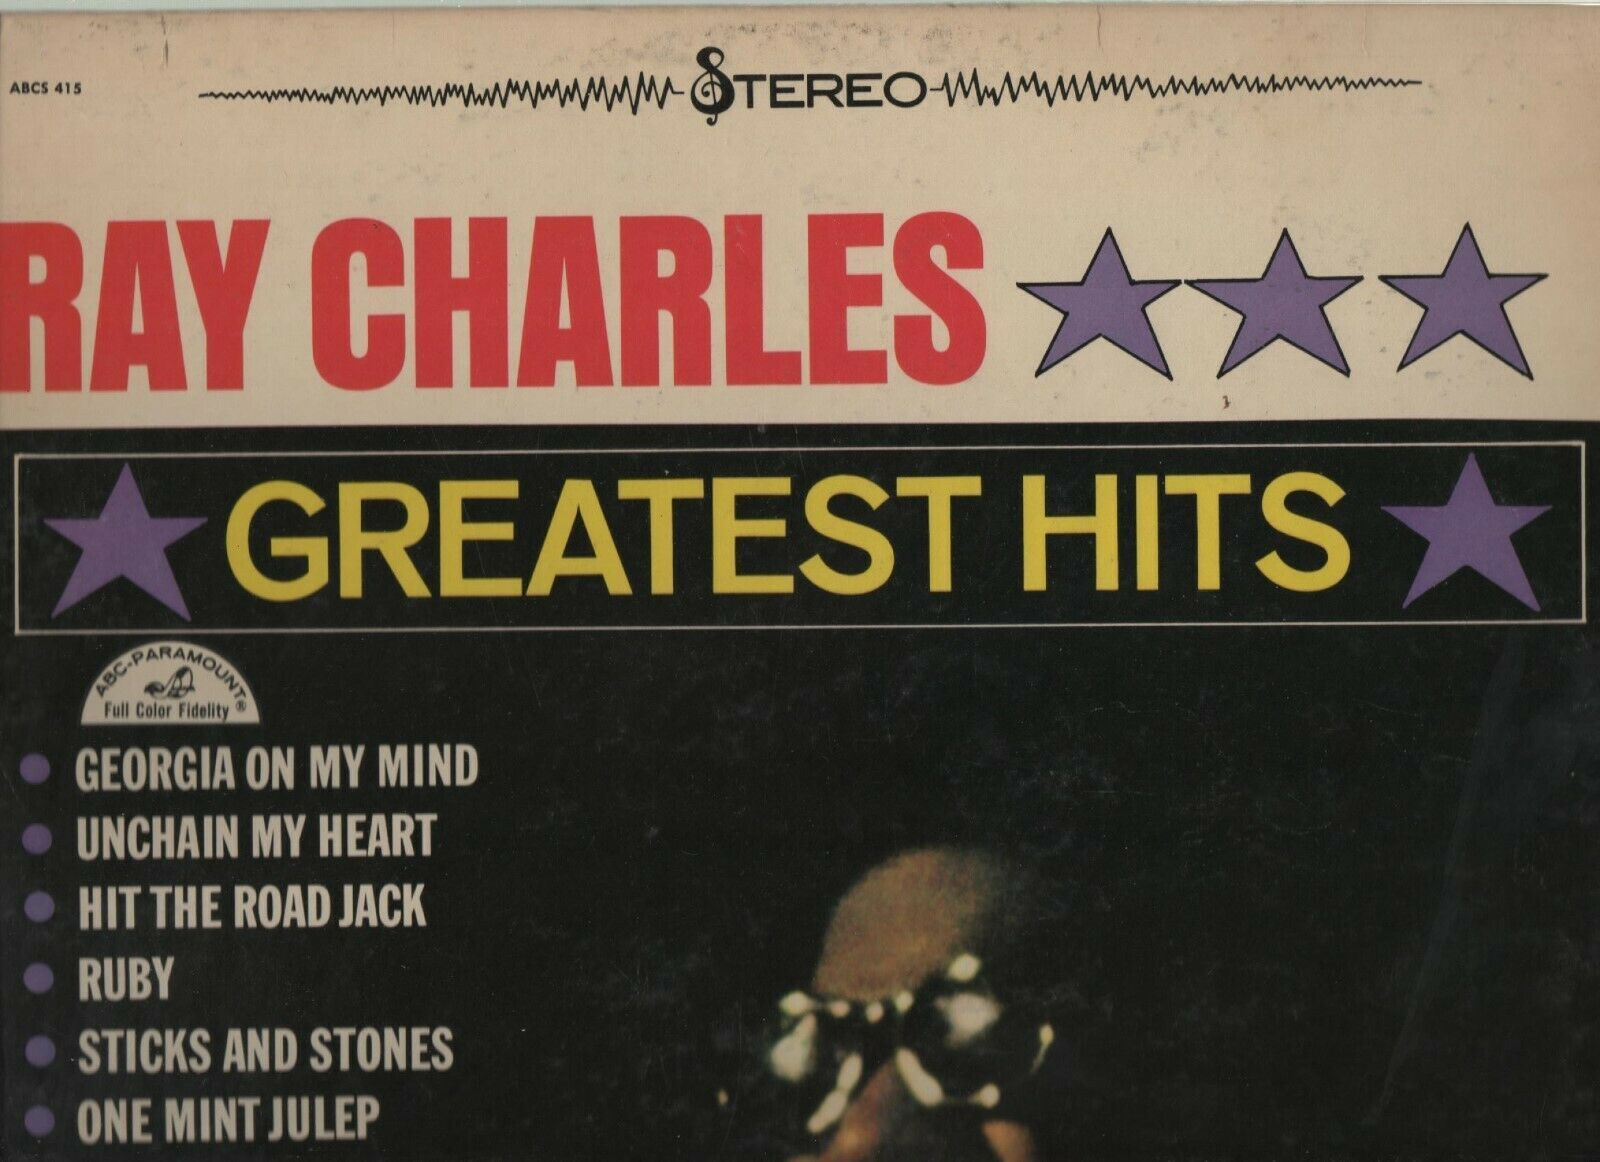 Ray Charles Greatest Hits - ABCS 415 - ABC Paramount - 1961